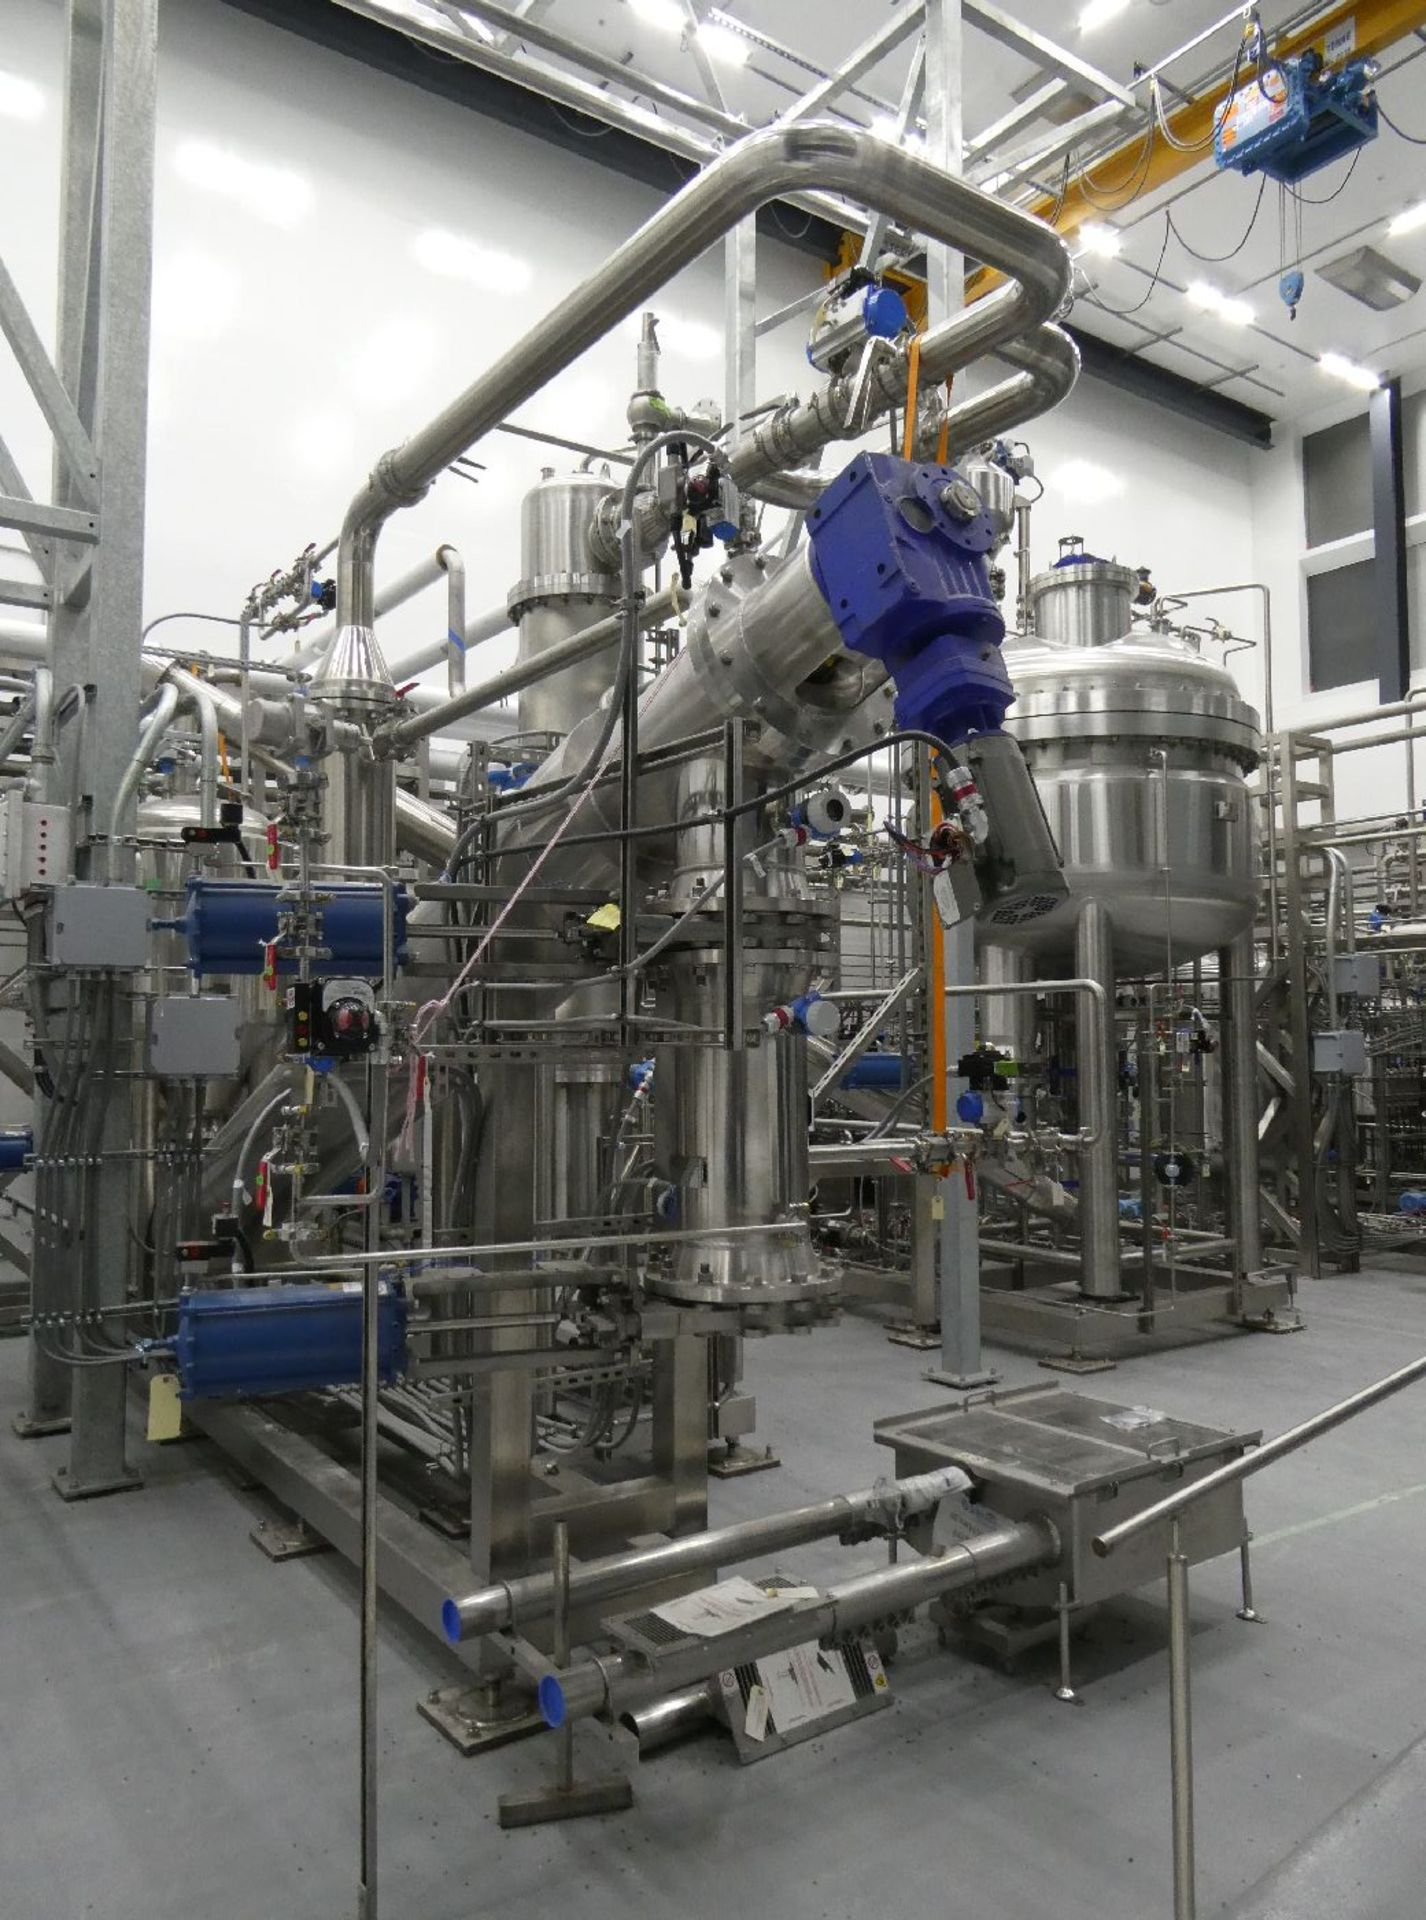 ROTAX Closed Loop Solvent Based Continuous Oil Extraction System - Image 5 of 68